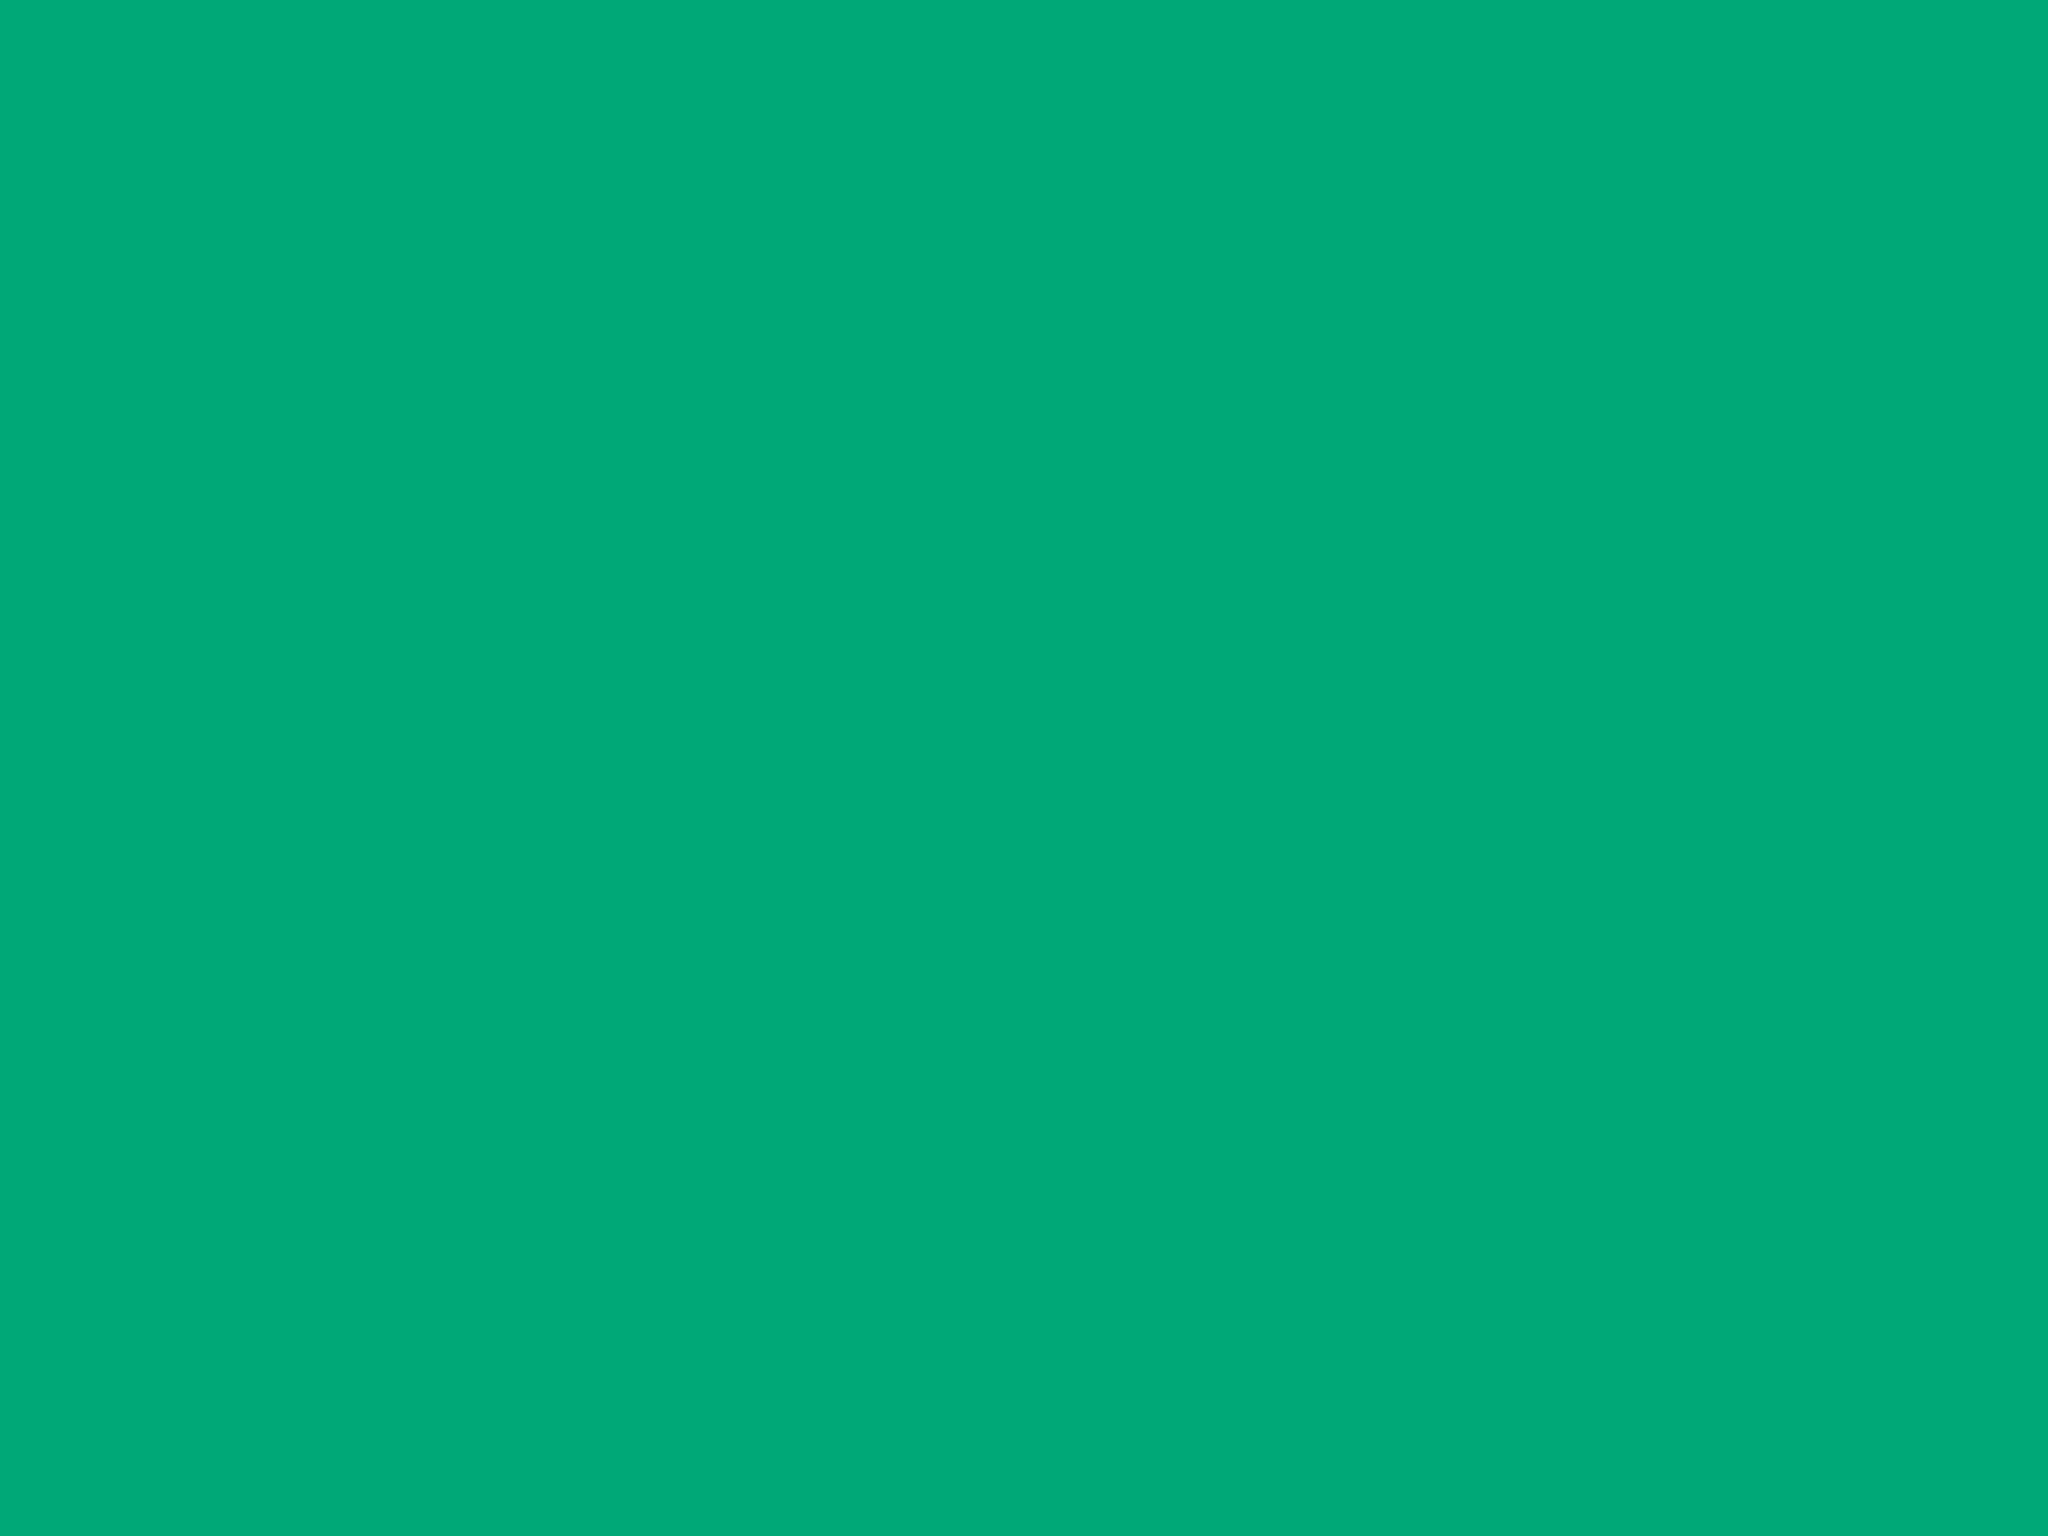 2048x1536 Green Munsell Solid Color Background